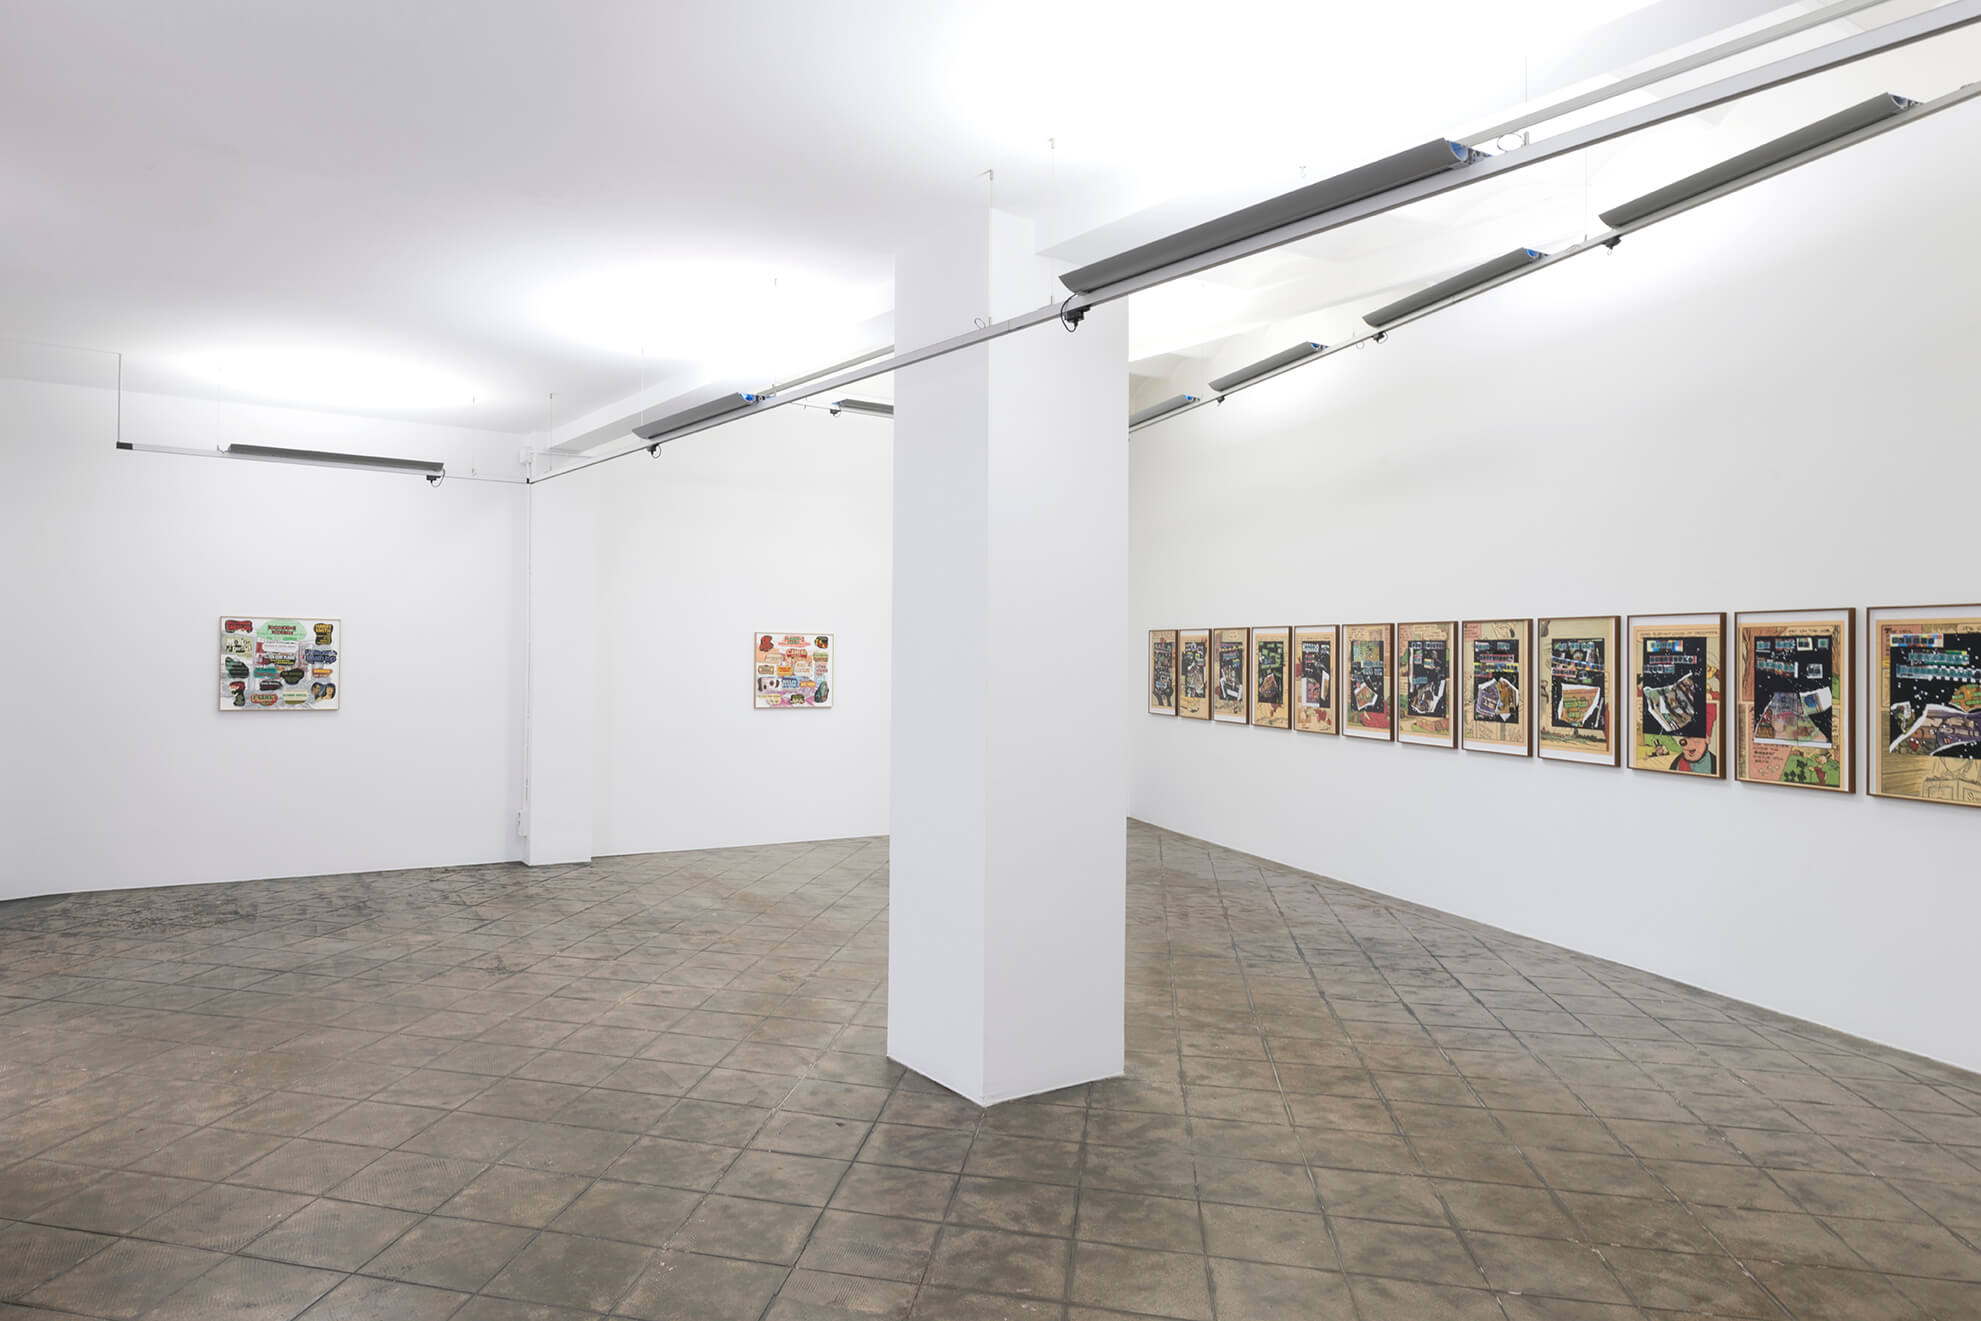 Installation view: Planet Stories, ProjecteSD | Planet Stories | ProjecteSD